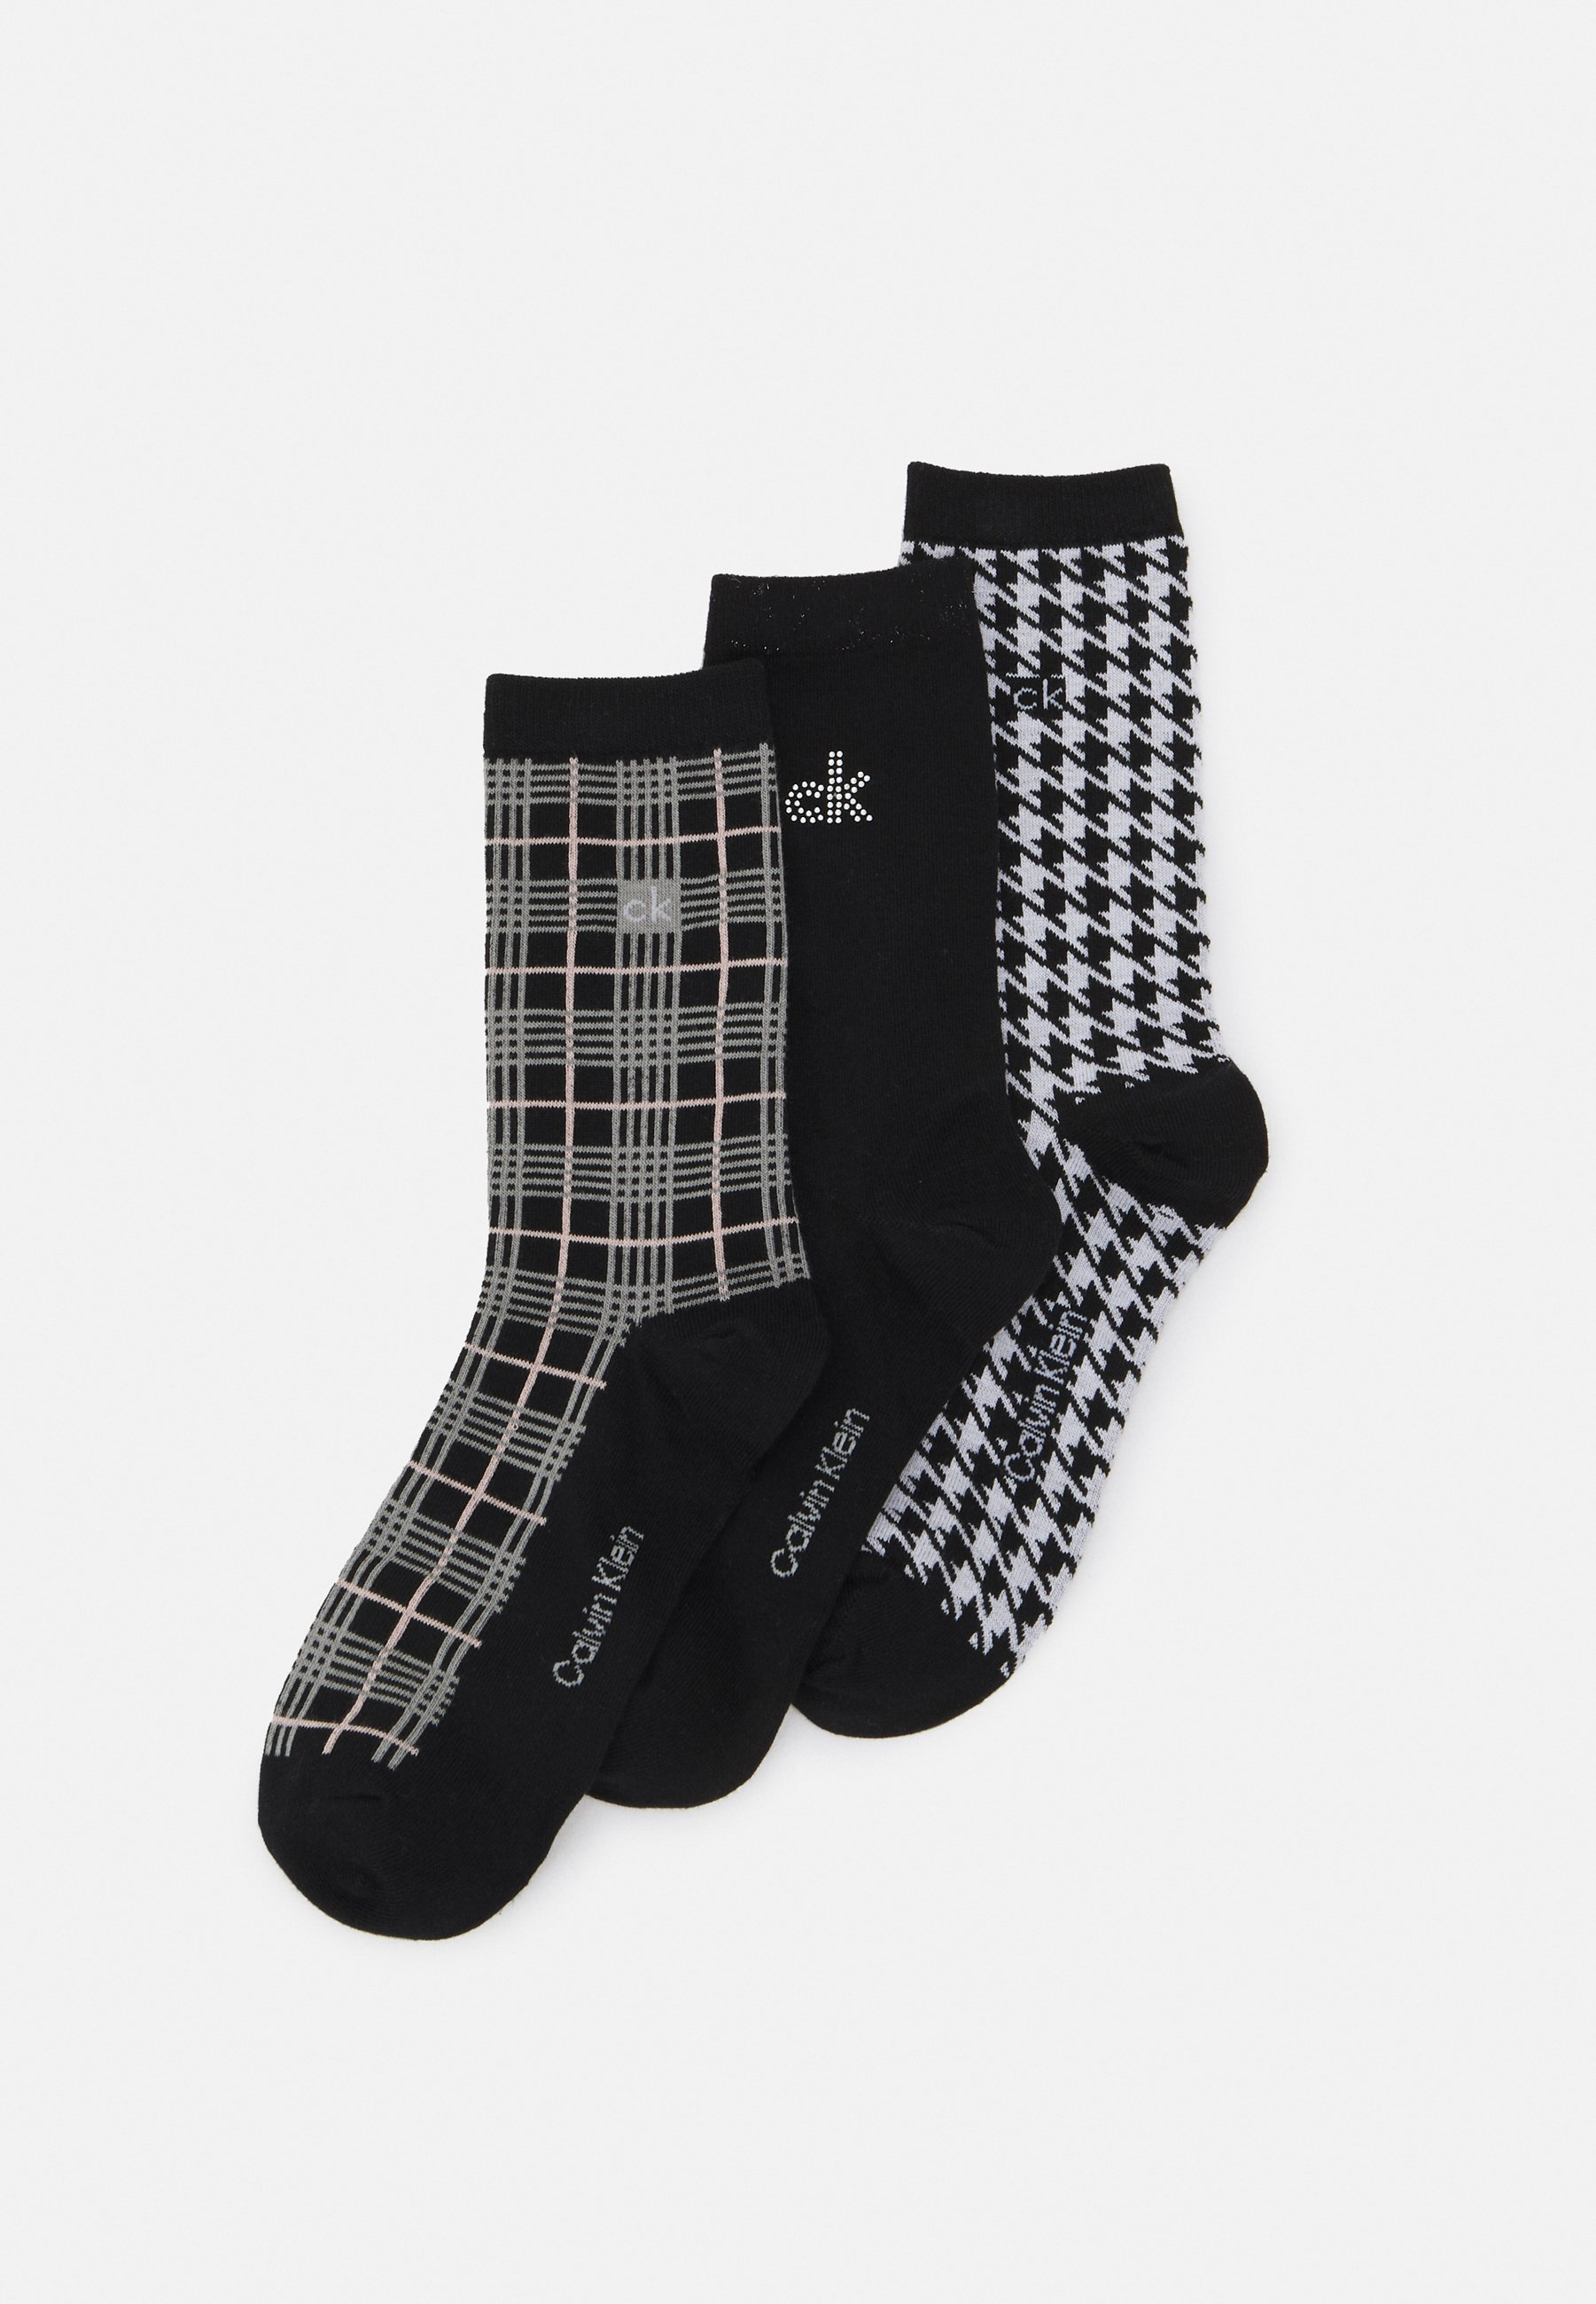 Femme WOMENS CRYSTAL DRESS CREW GIFTBOX 3 PACK - Chaussettes